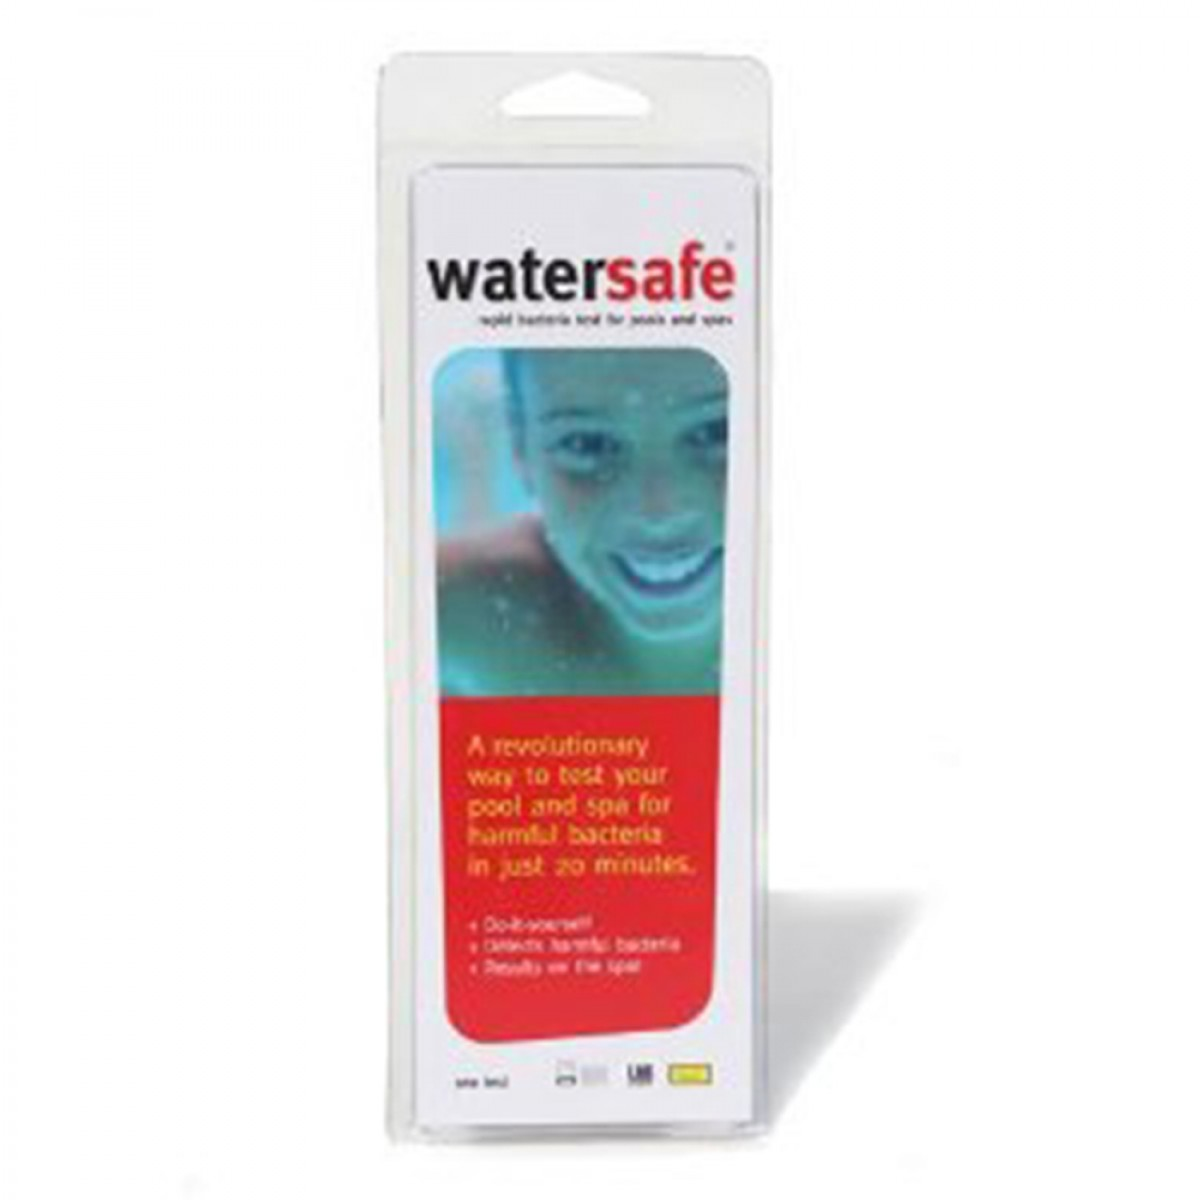 watersafe well water test kit instructions